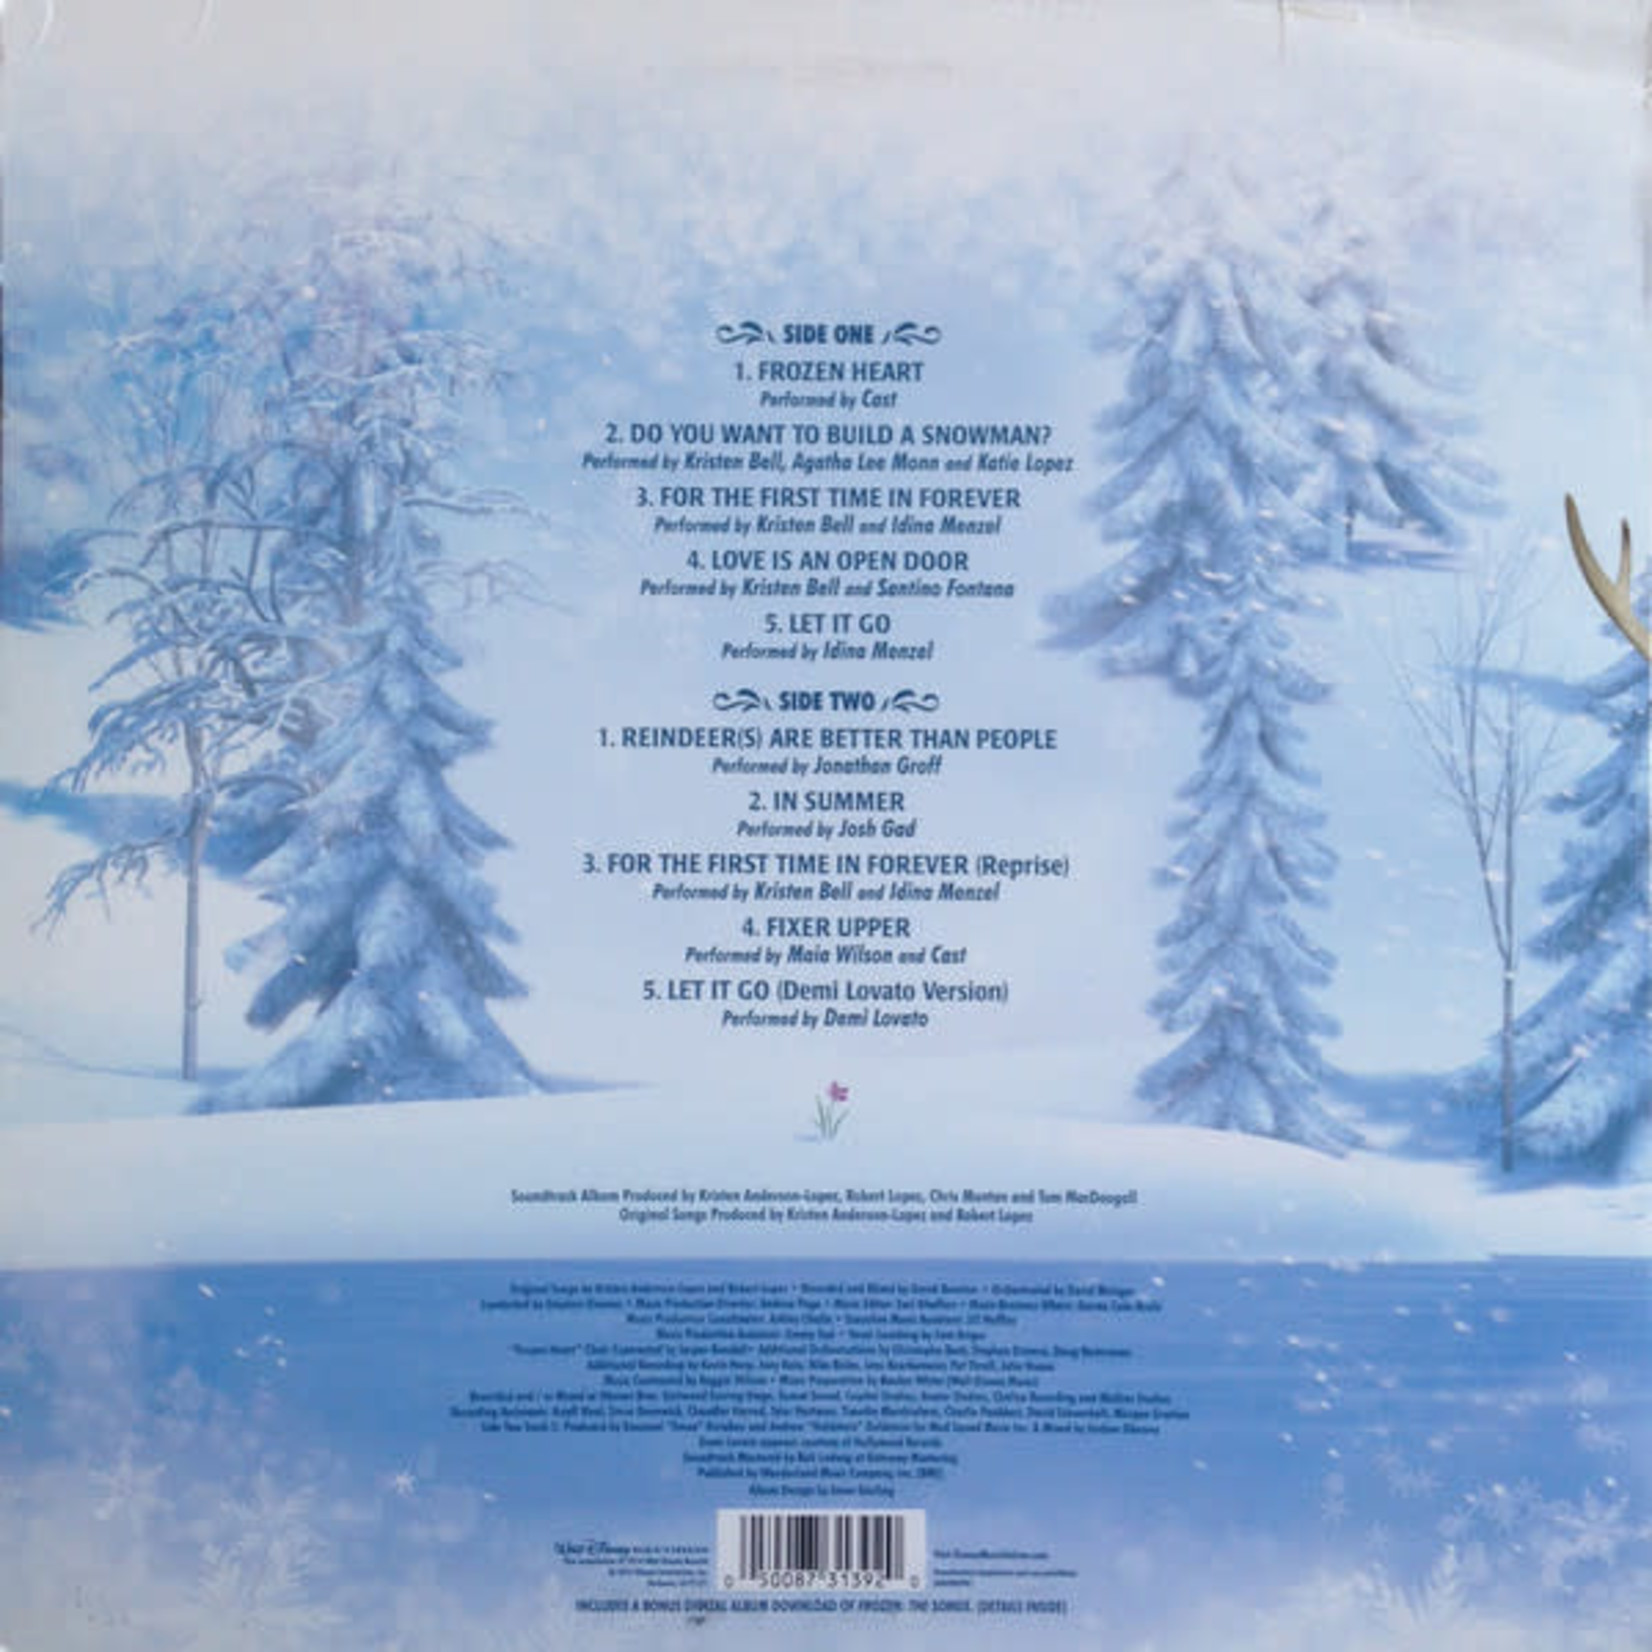 VARIOUS ARTISTS FROZEN: THE SONGS